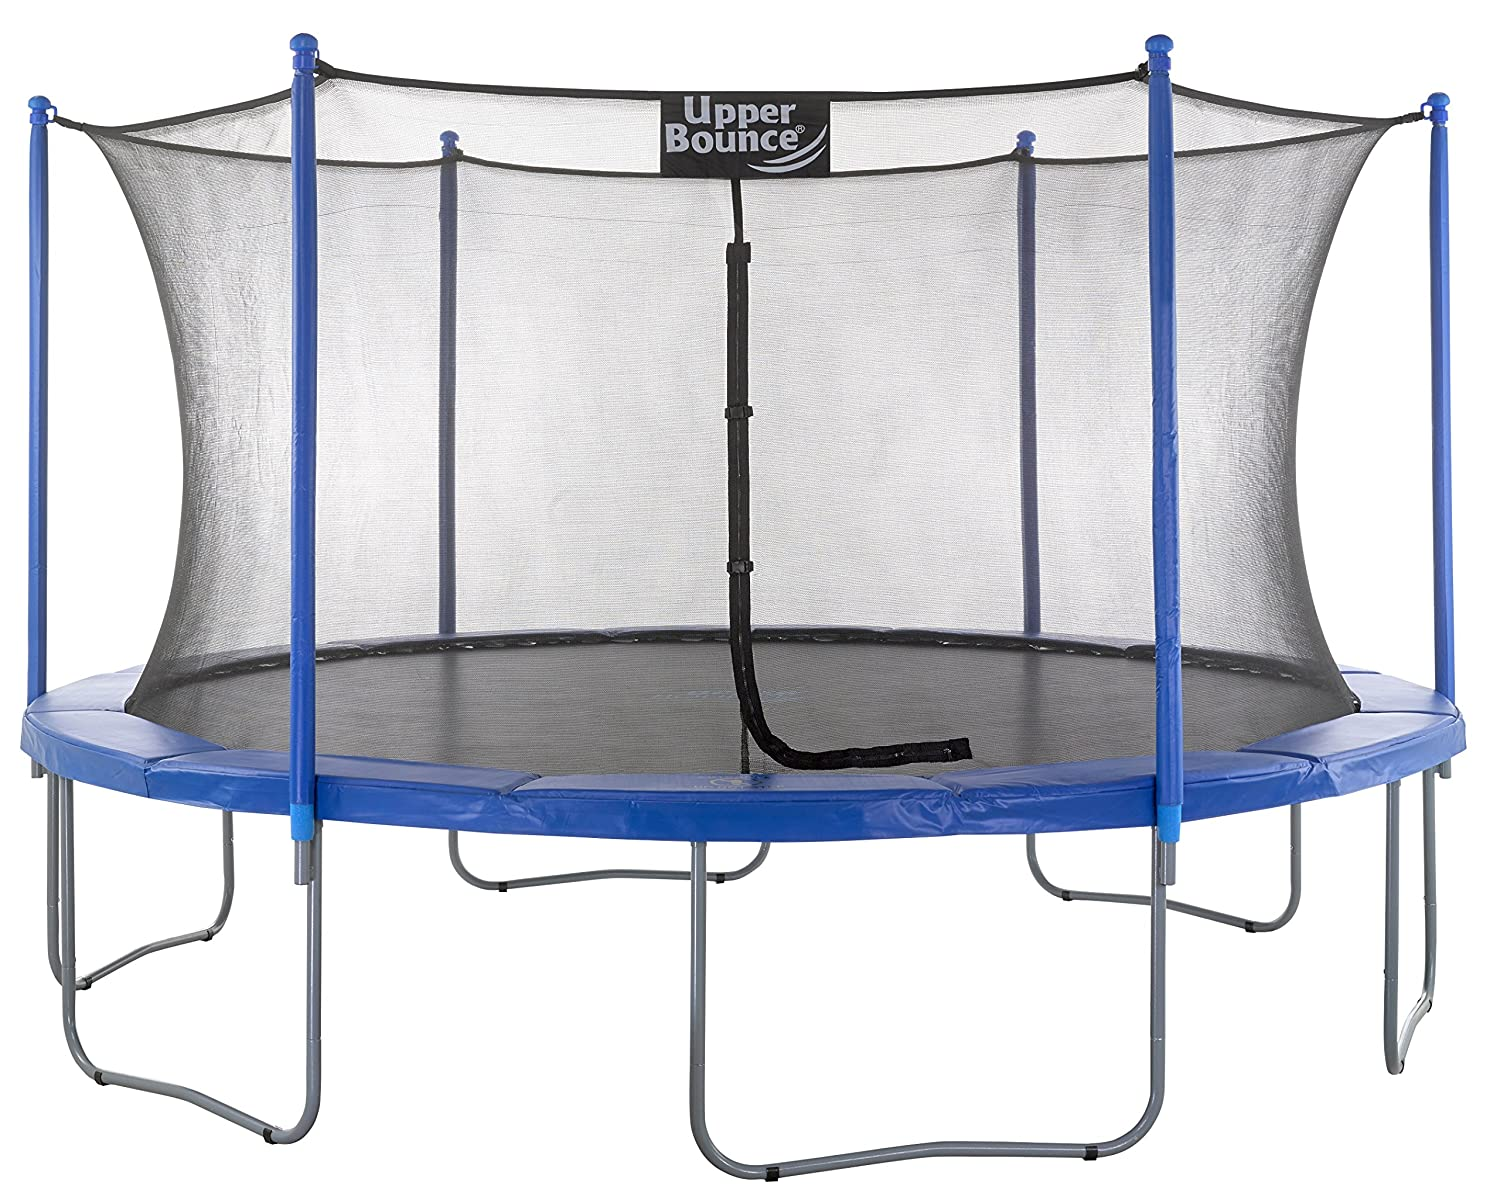 Best Trampoline Brands Our Top 7 Picks 2019 Trampoline